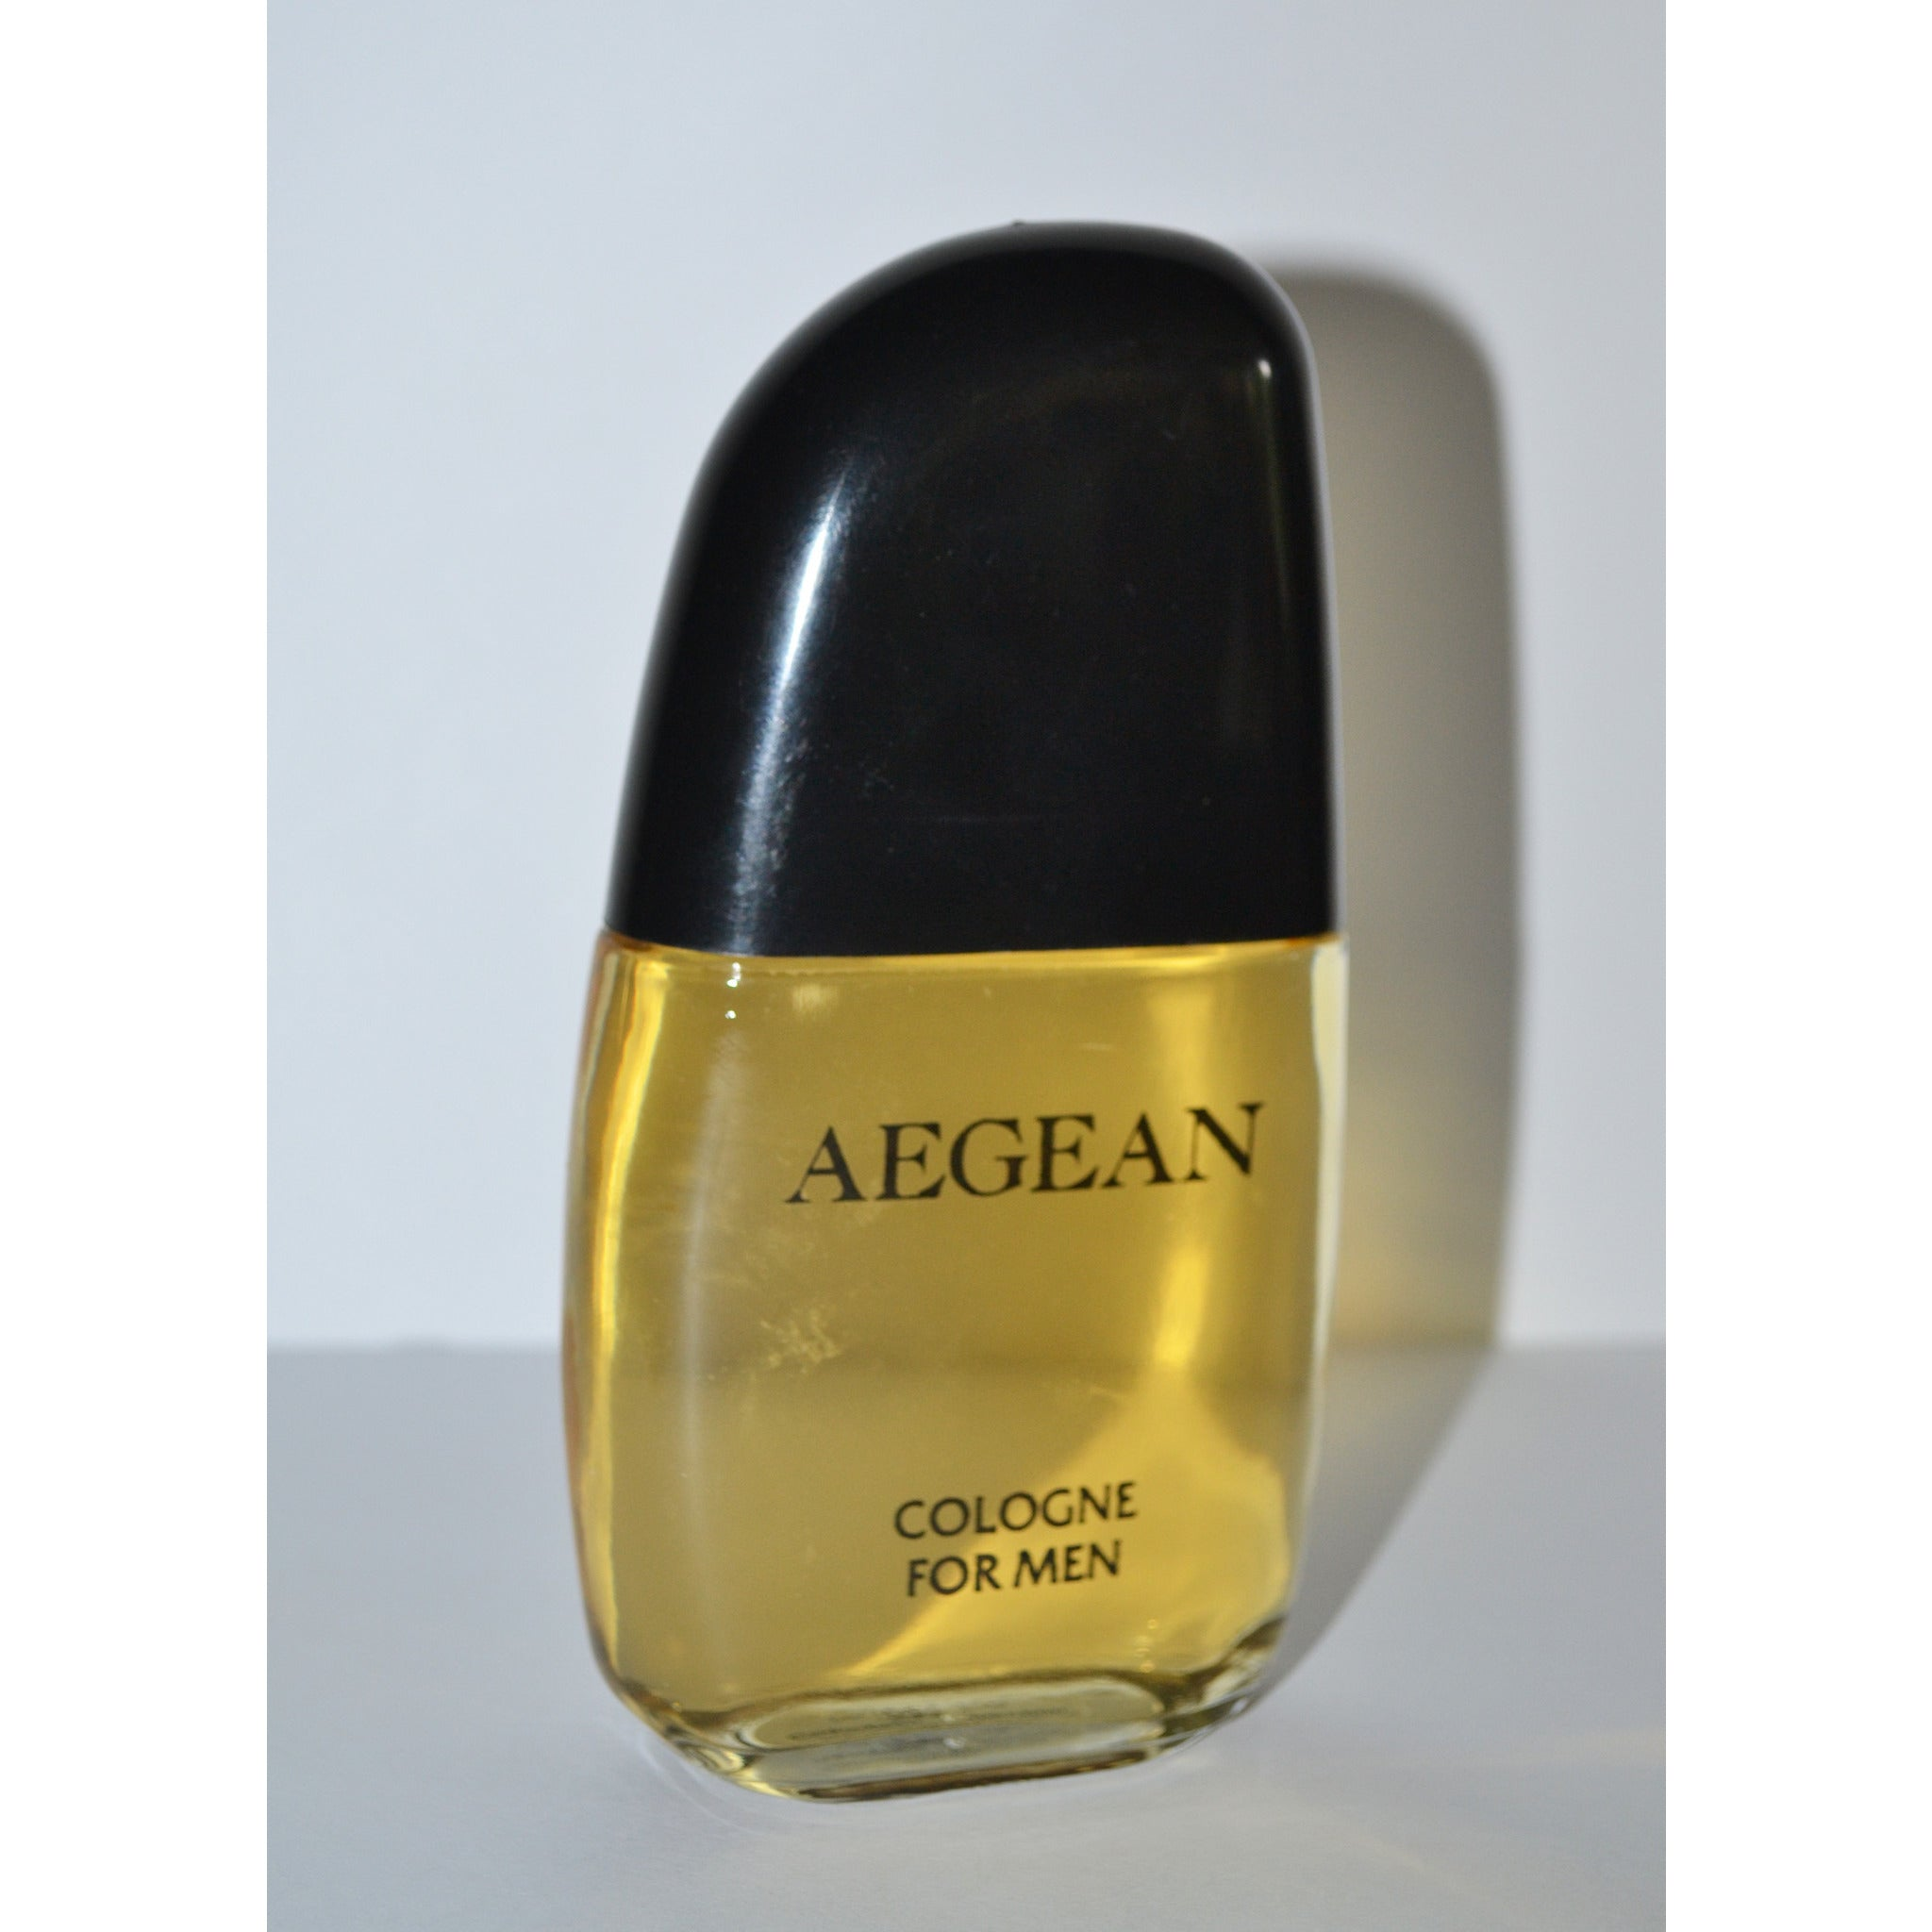 Vintage Aegean Cologne For Men